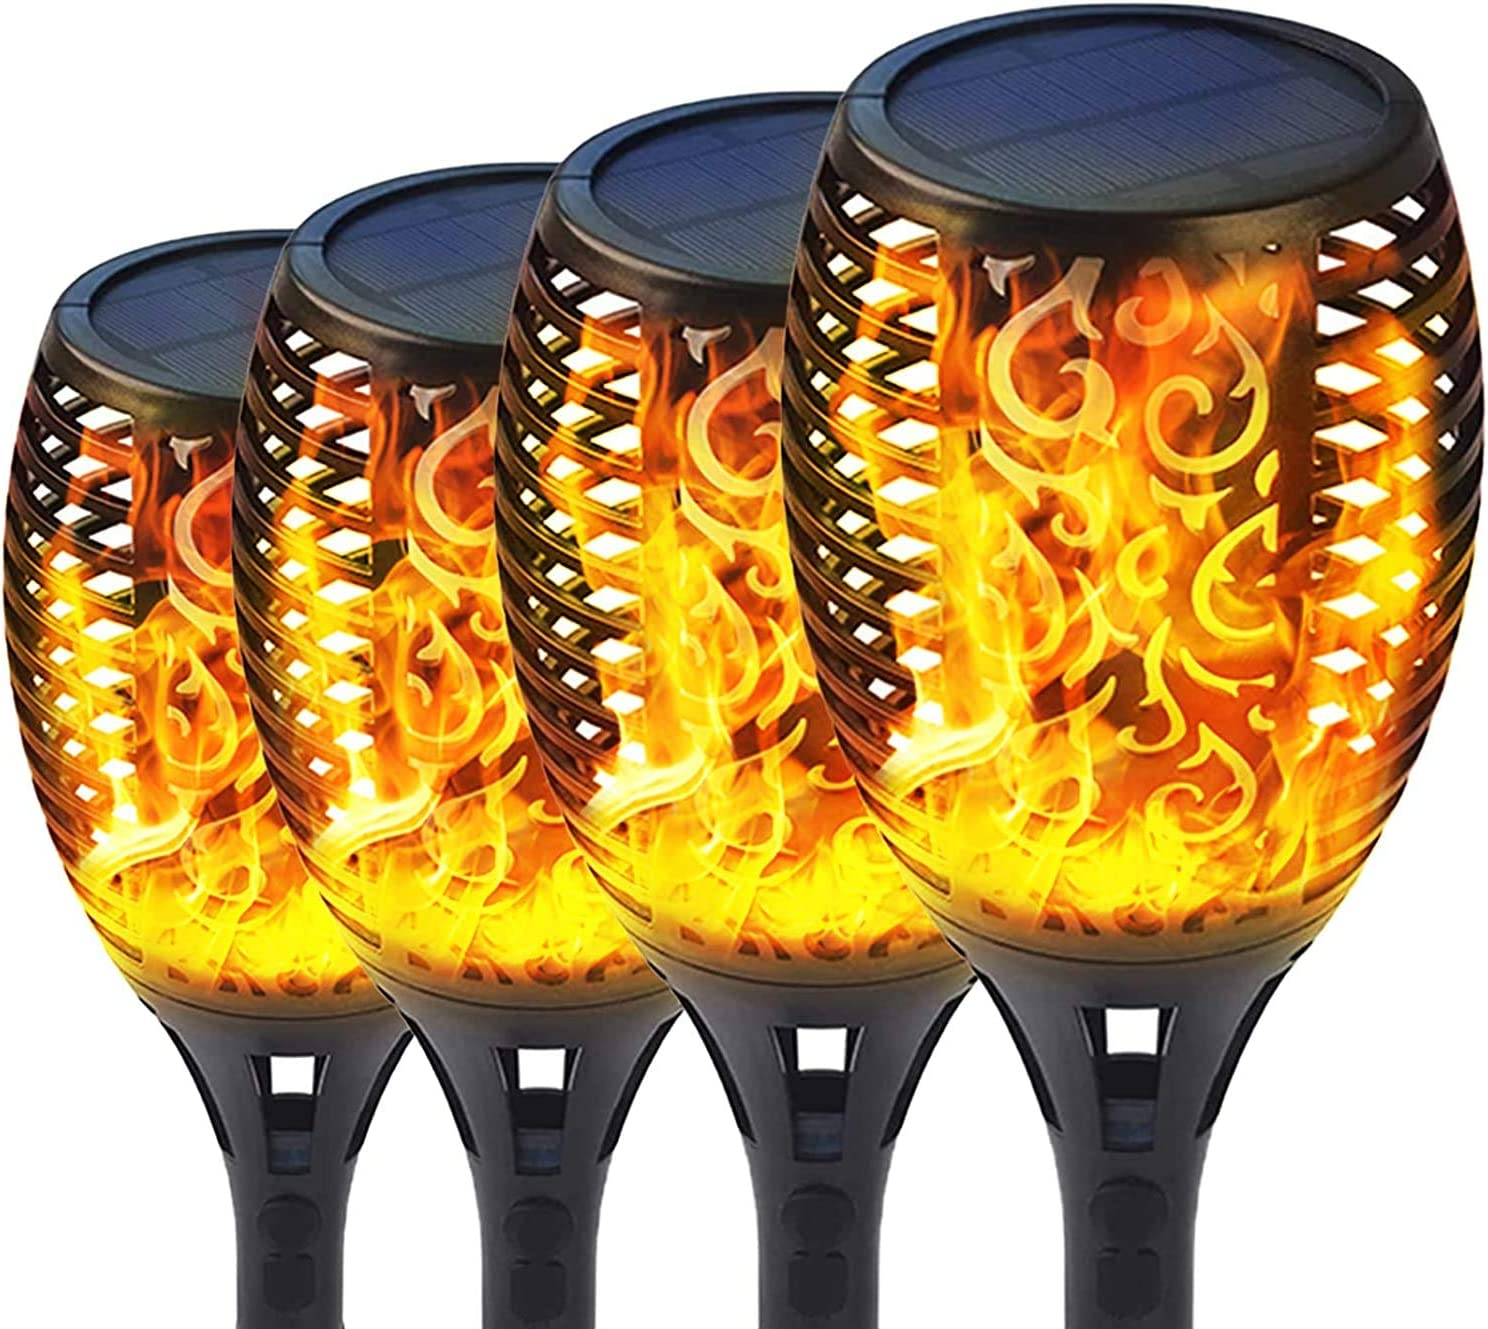 Details about  /1-20pcs 96LED Solar Torch Light Flickering Dancing Flame Garden Waterproof Lamp